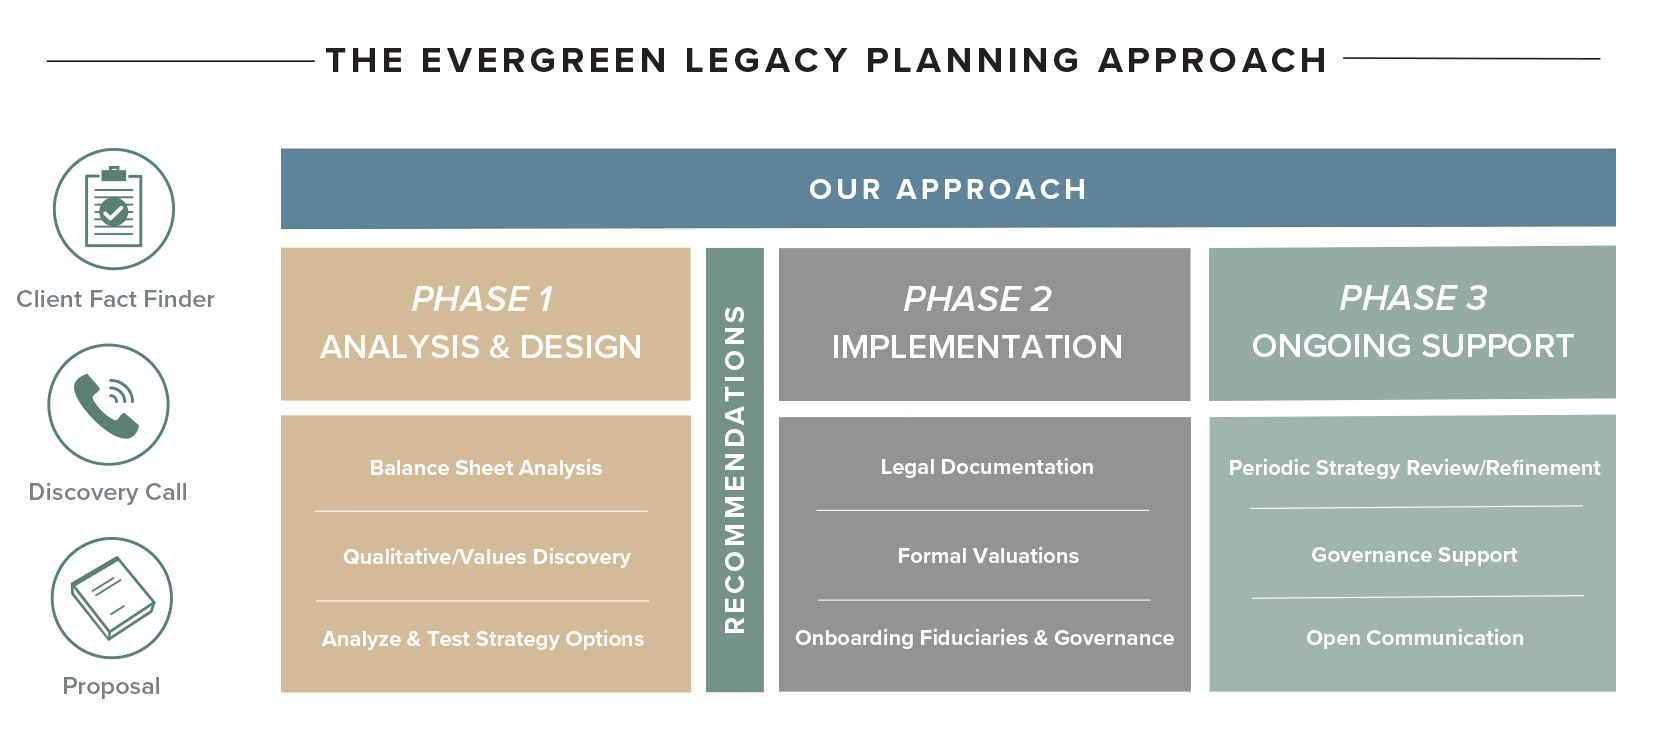 Evergreen Legacy Planning Approach infographic